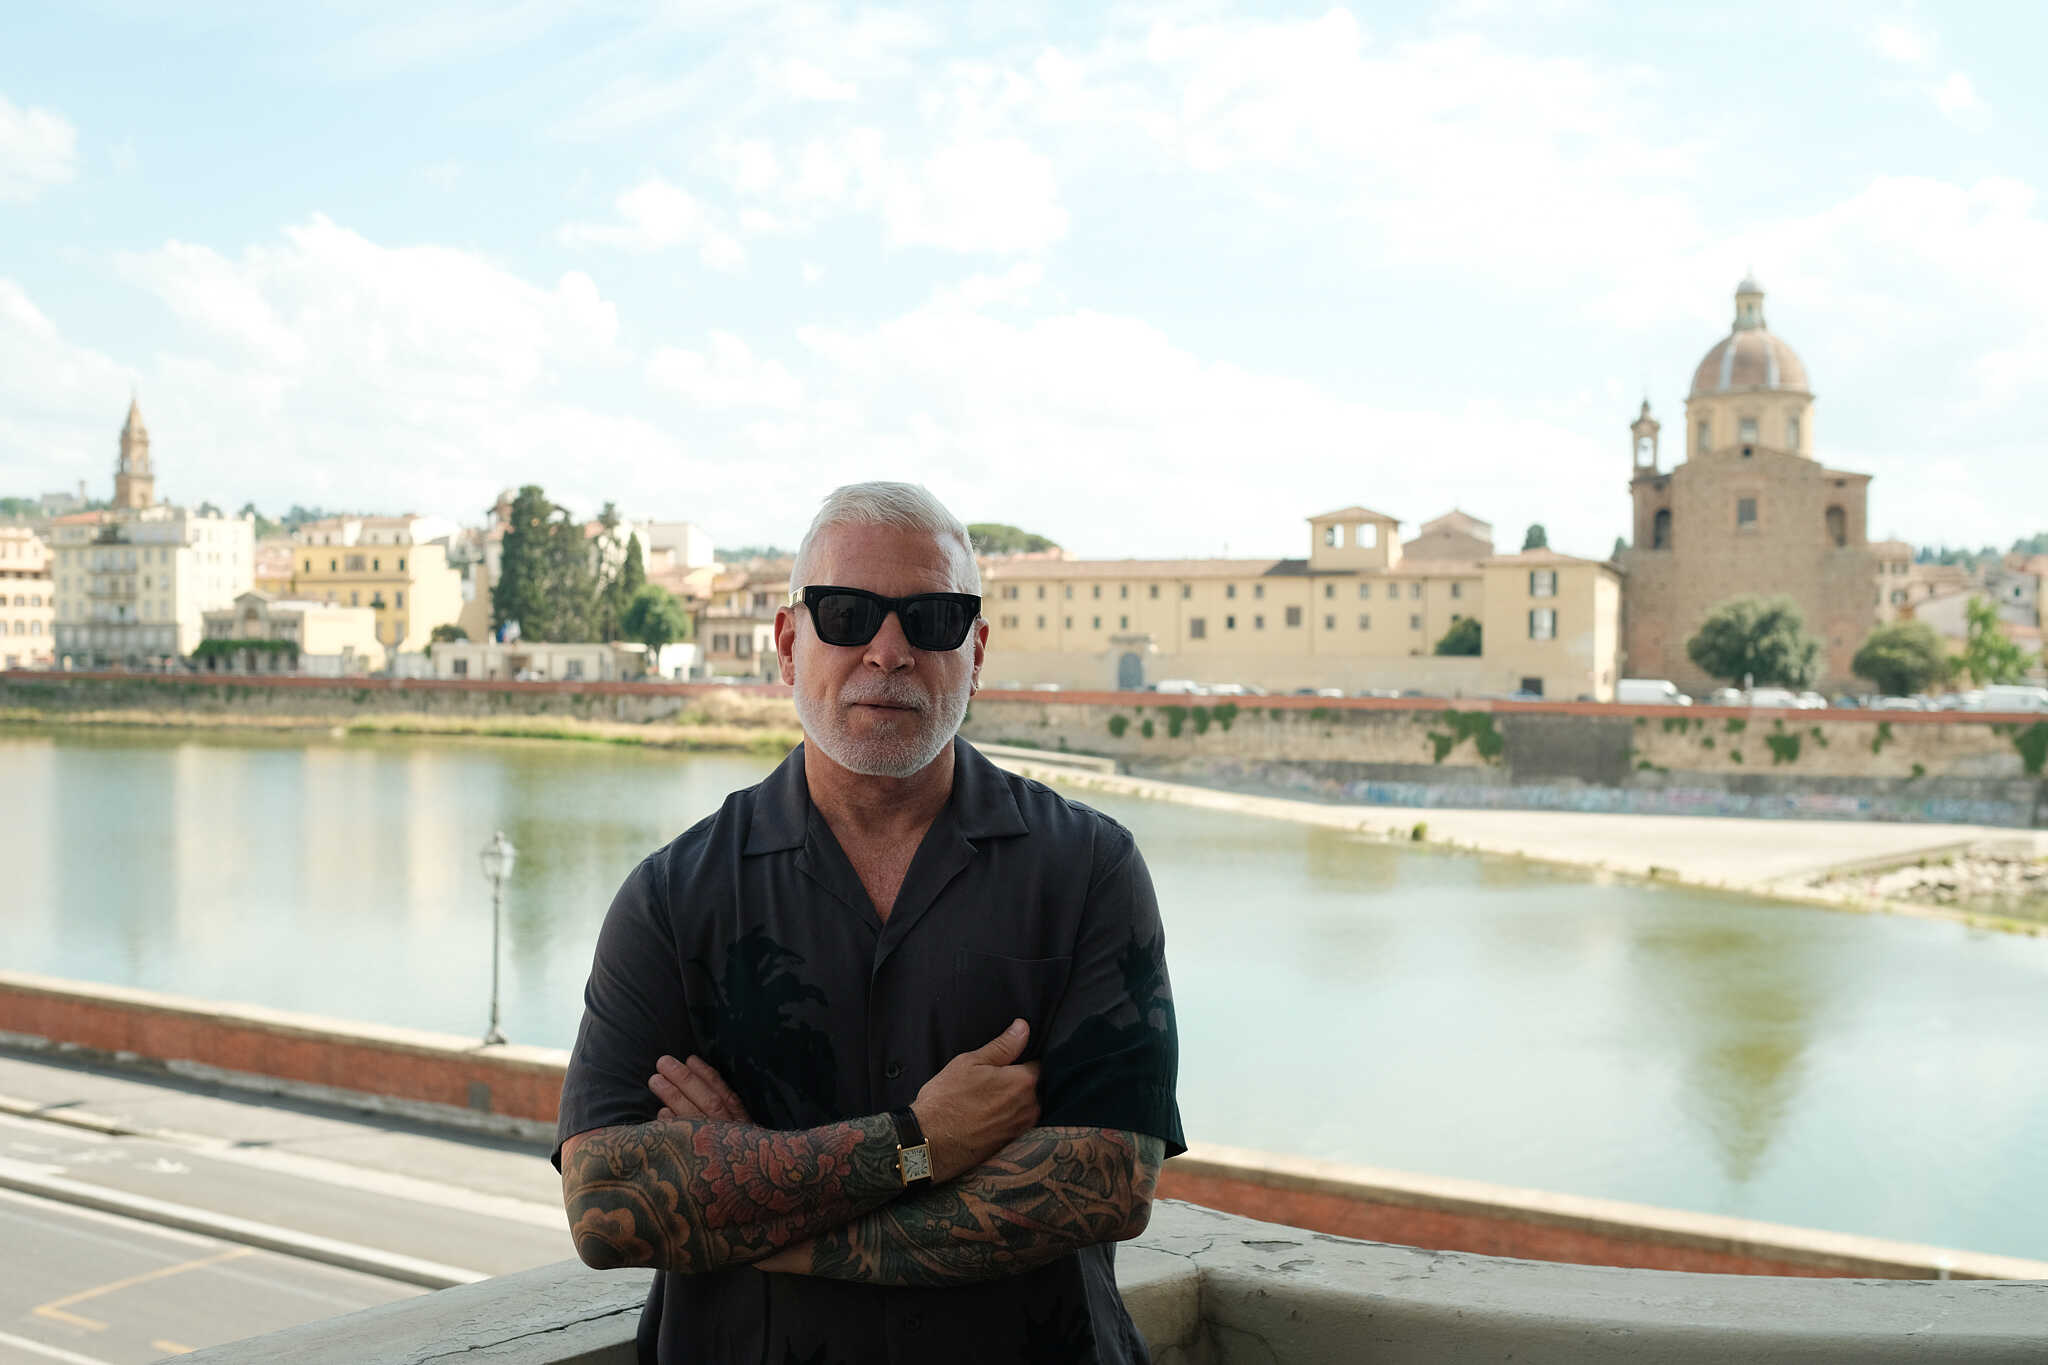 Nick Wooster, a style icon photographed in Florence during the fashion week by Alessandro Michelazzi